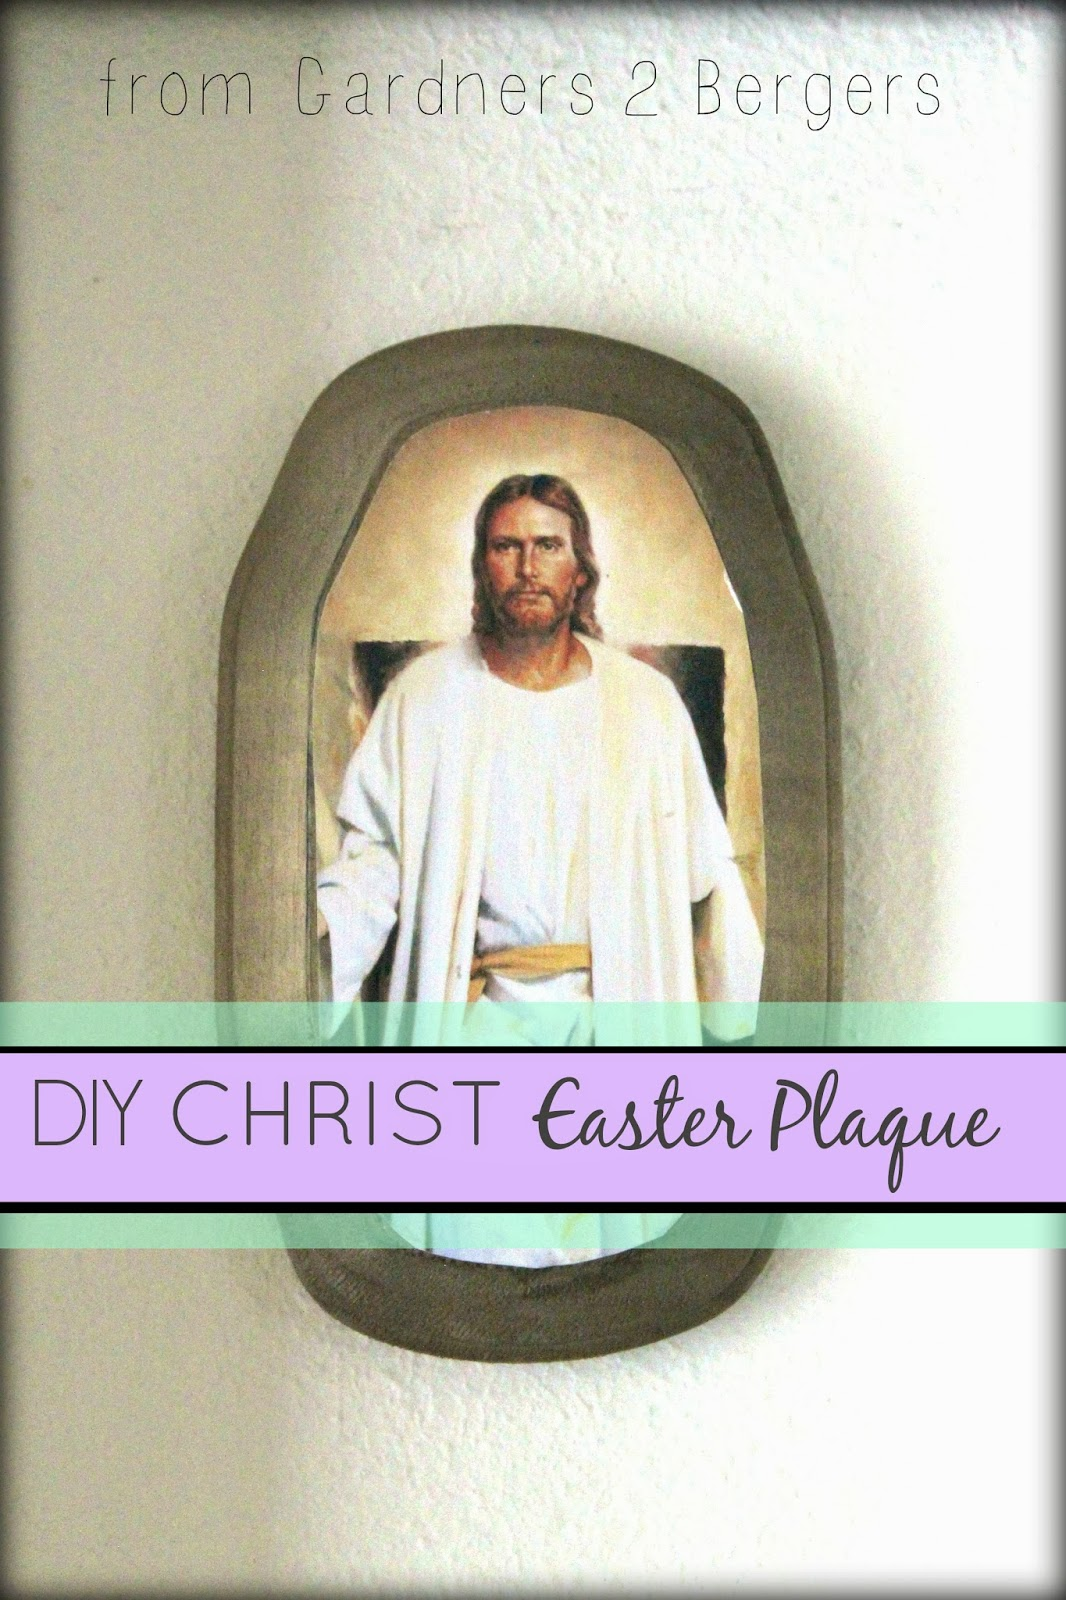 DIY-CHRIST-Easter-Photo-Plaques